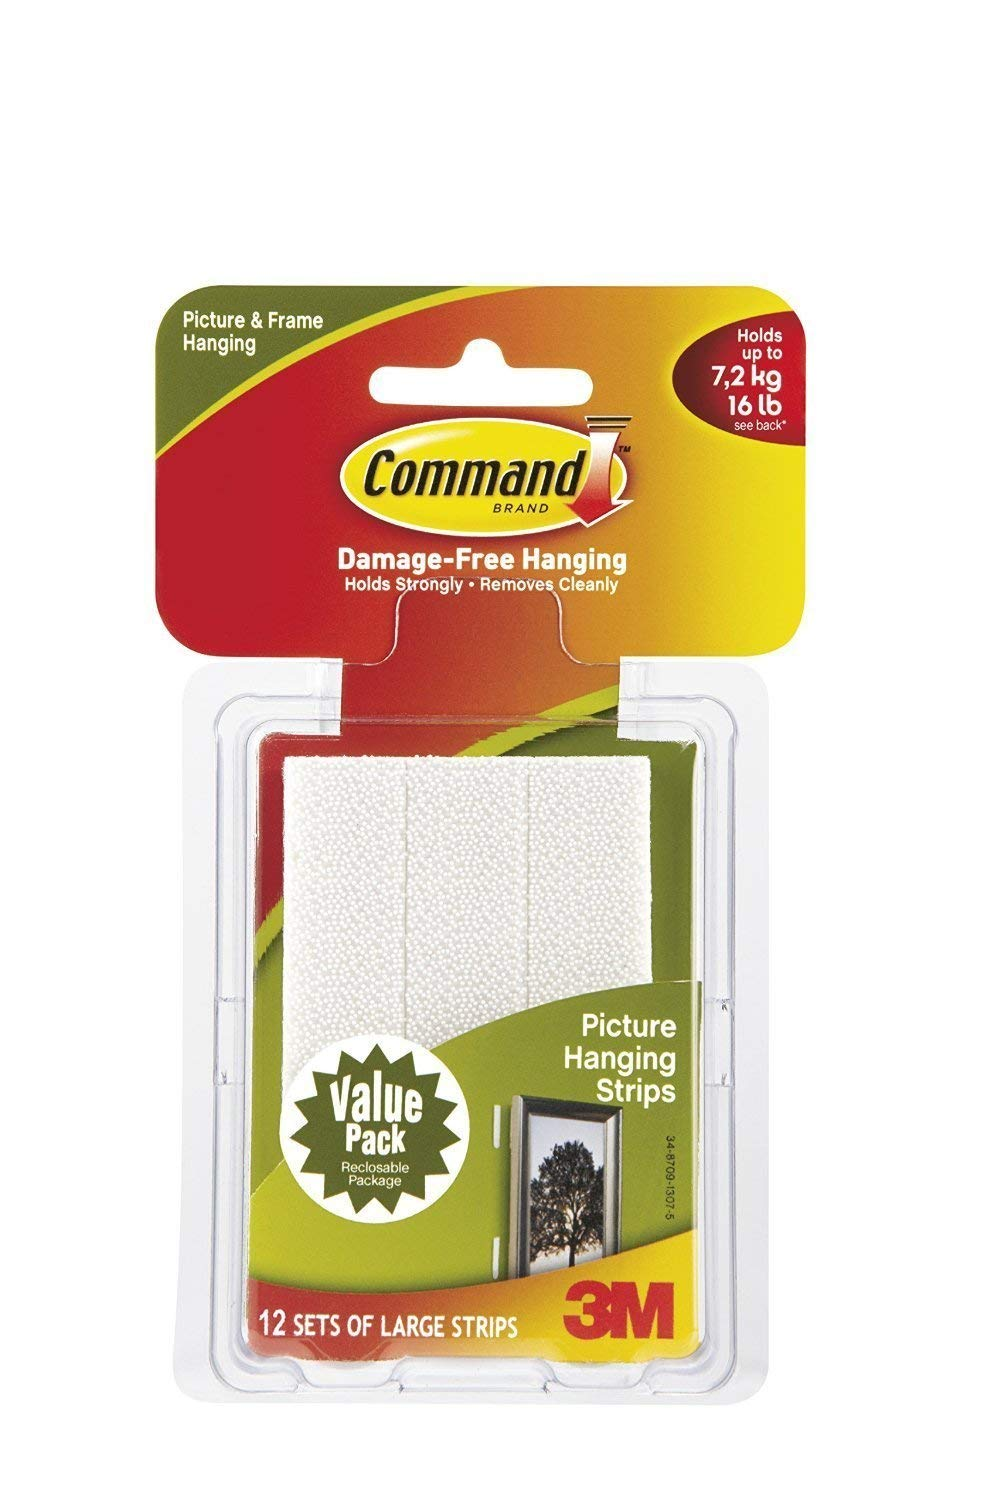 Command Picture X6SA5 & Frame Hanging Strips Value Pack JP2H, 24-Pairs Large, White